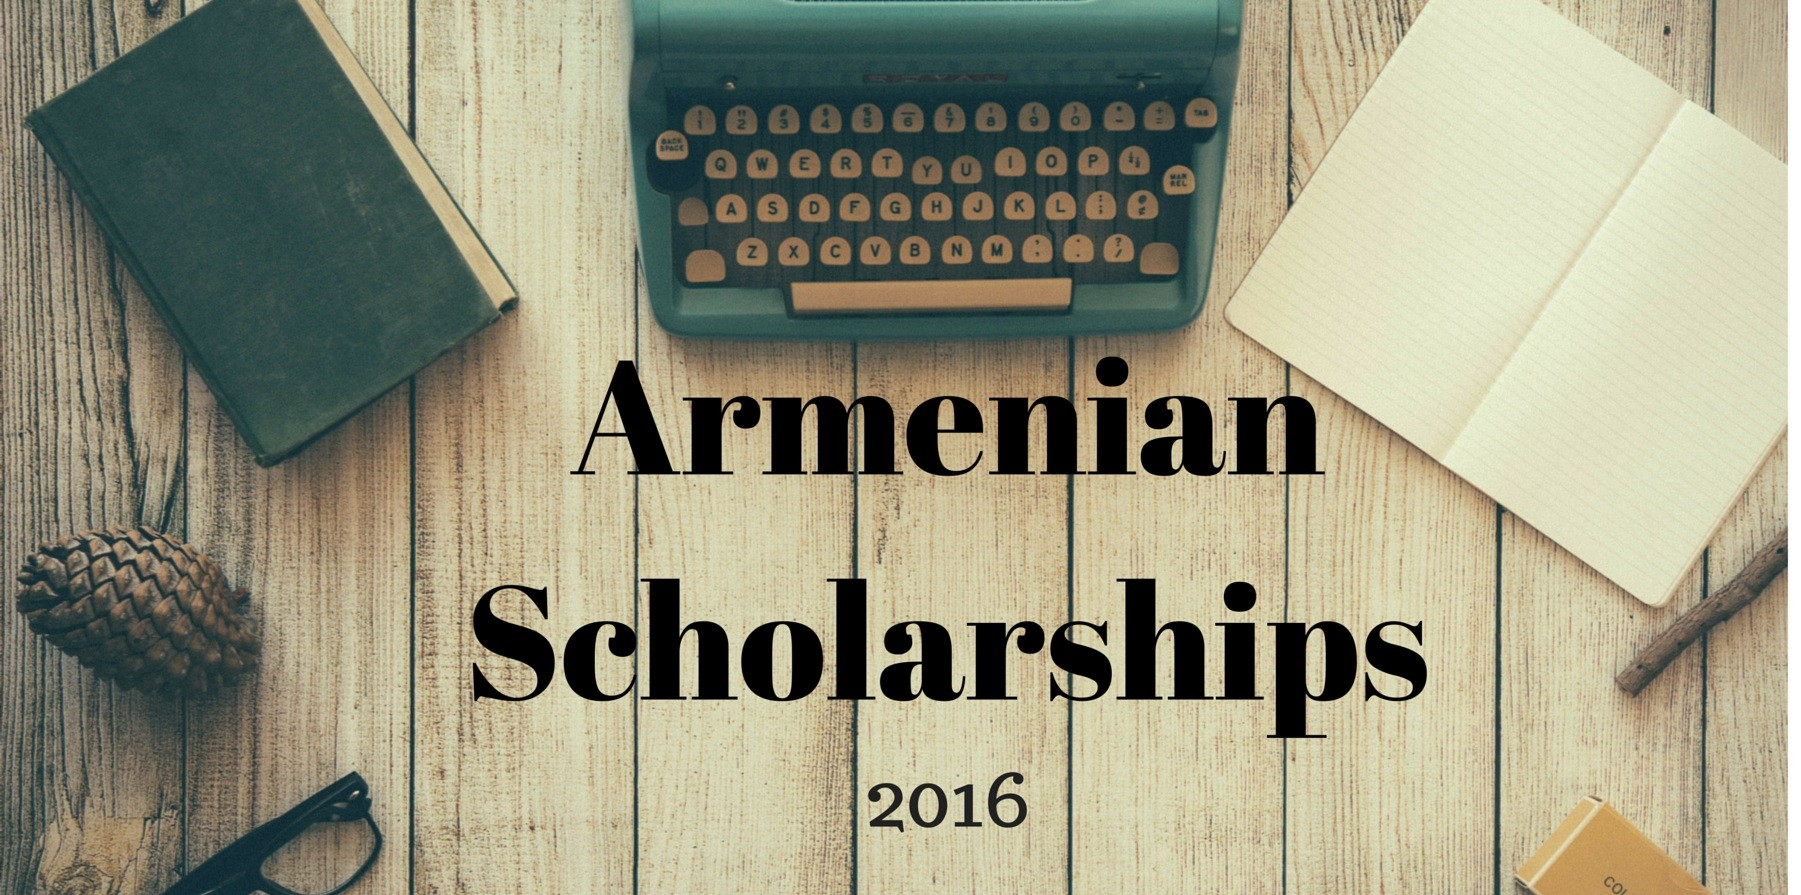 Armenian Scholarships